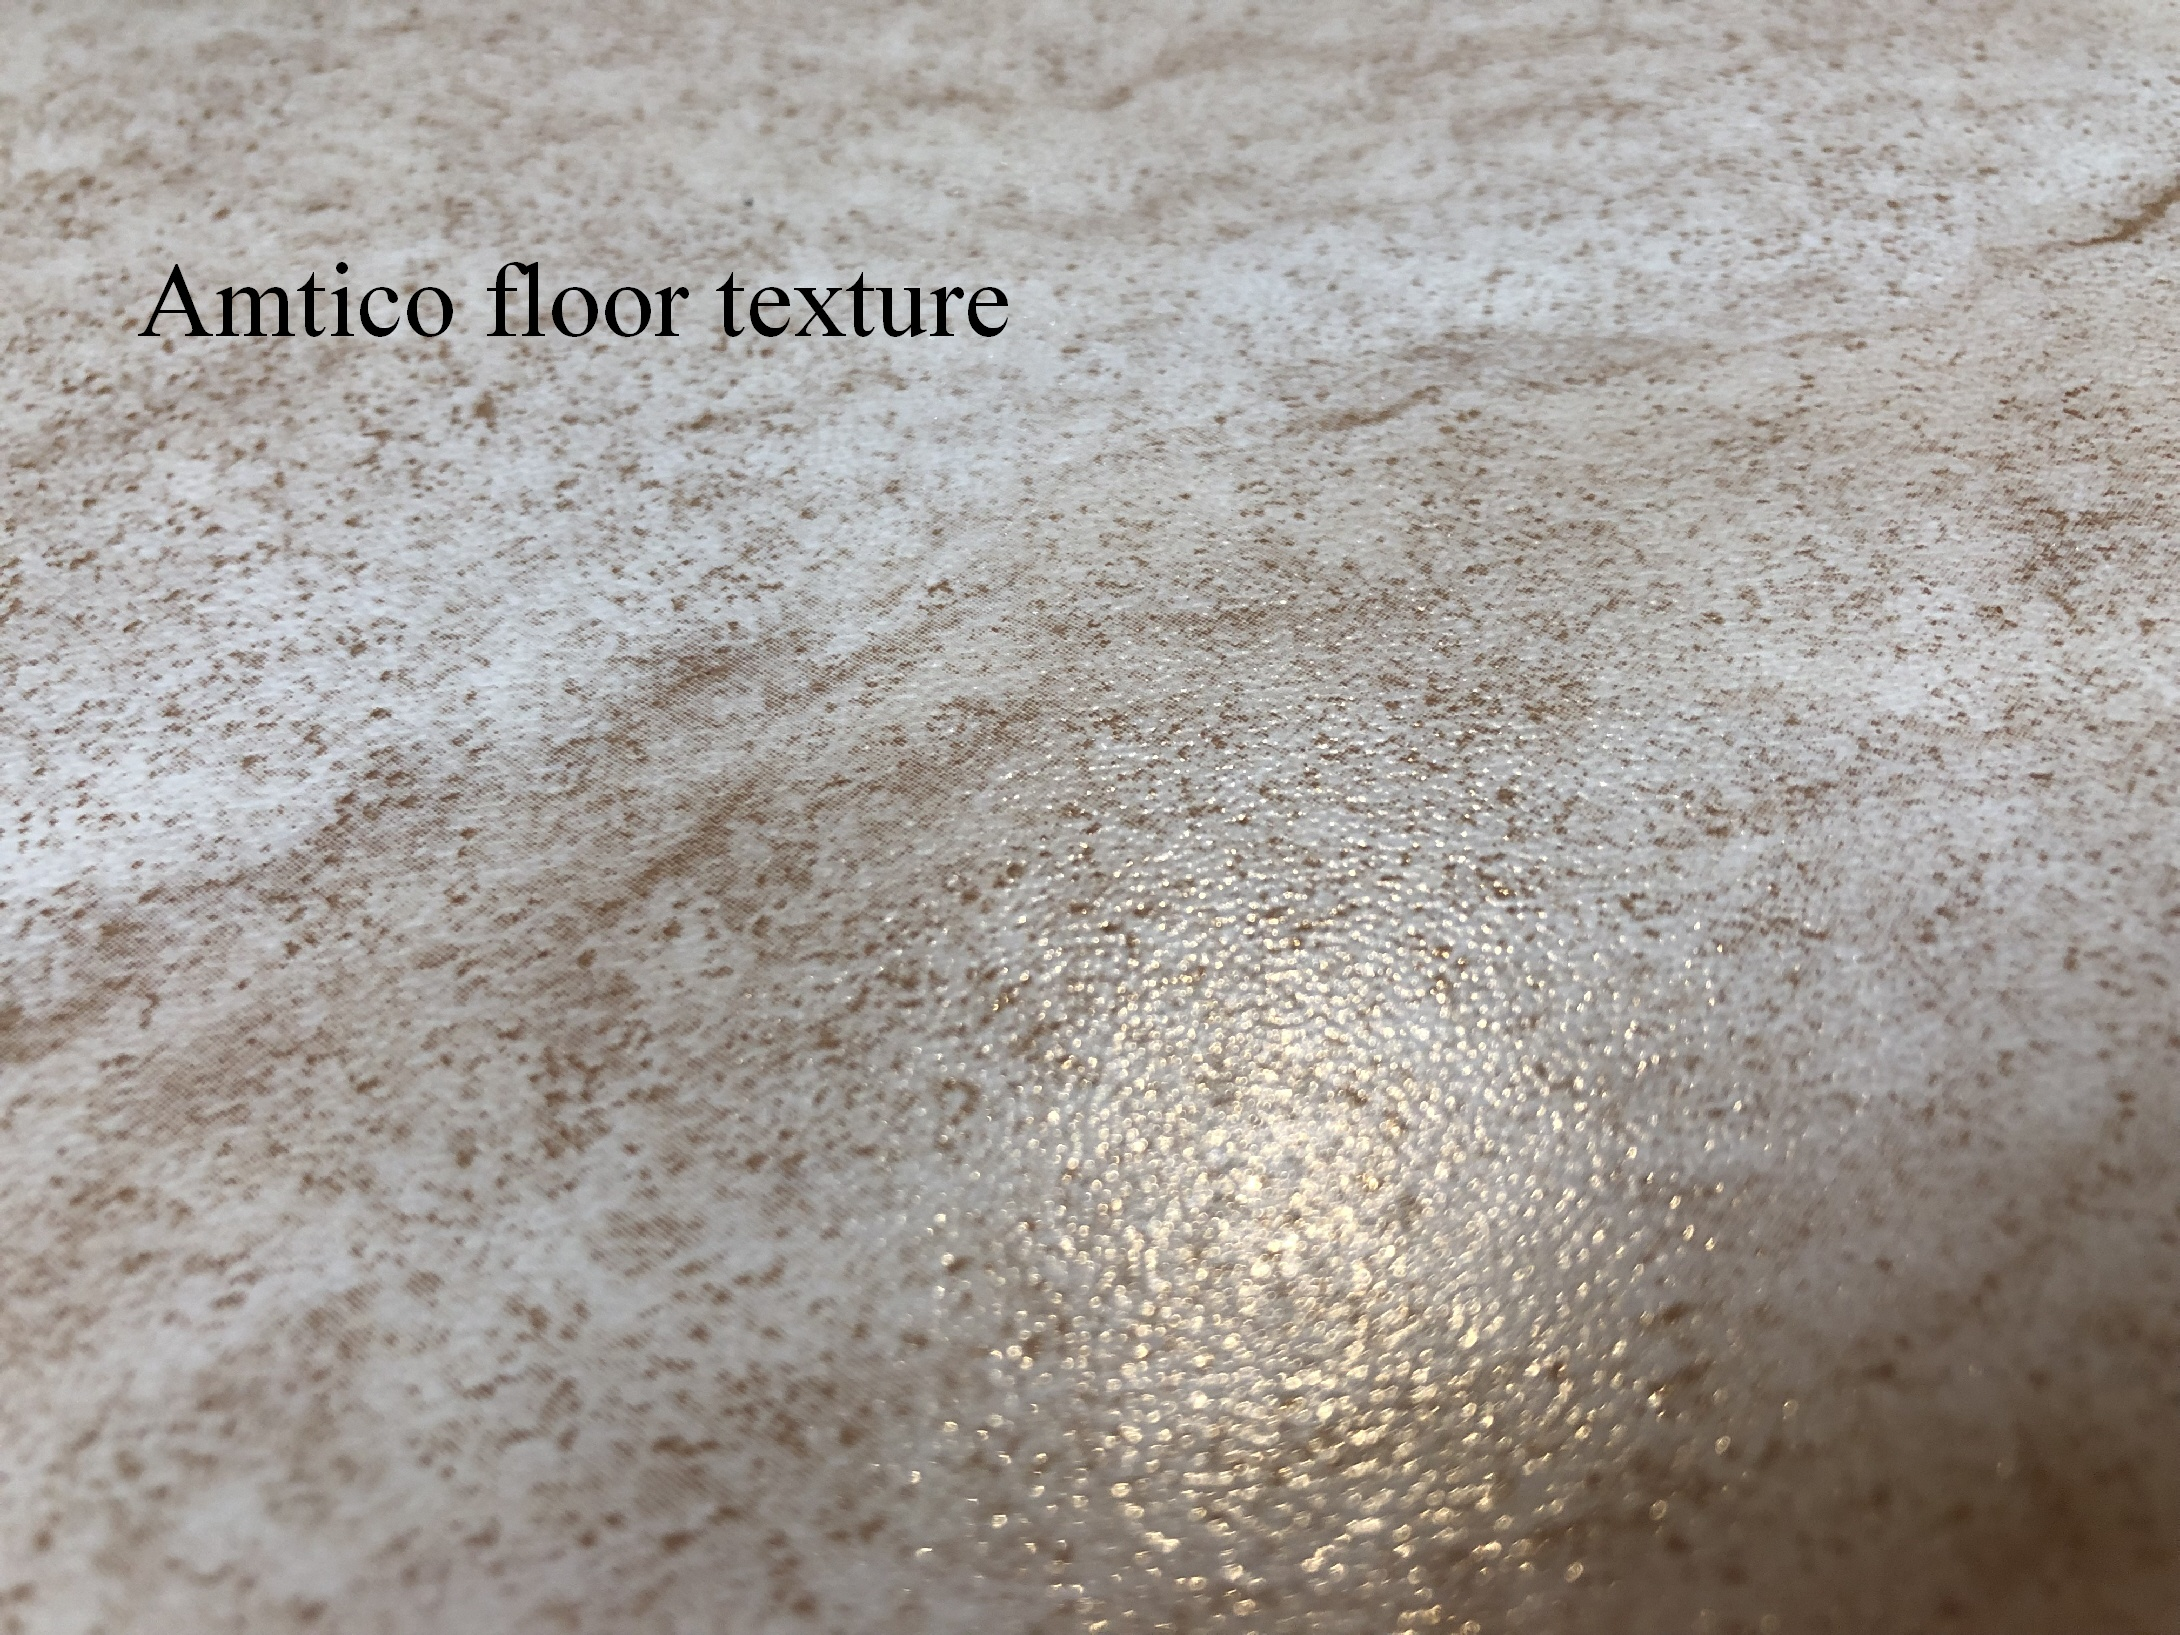 Amtico floor textured